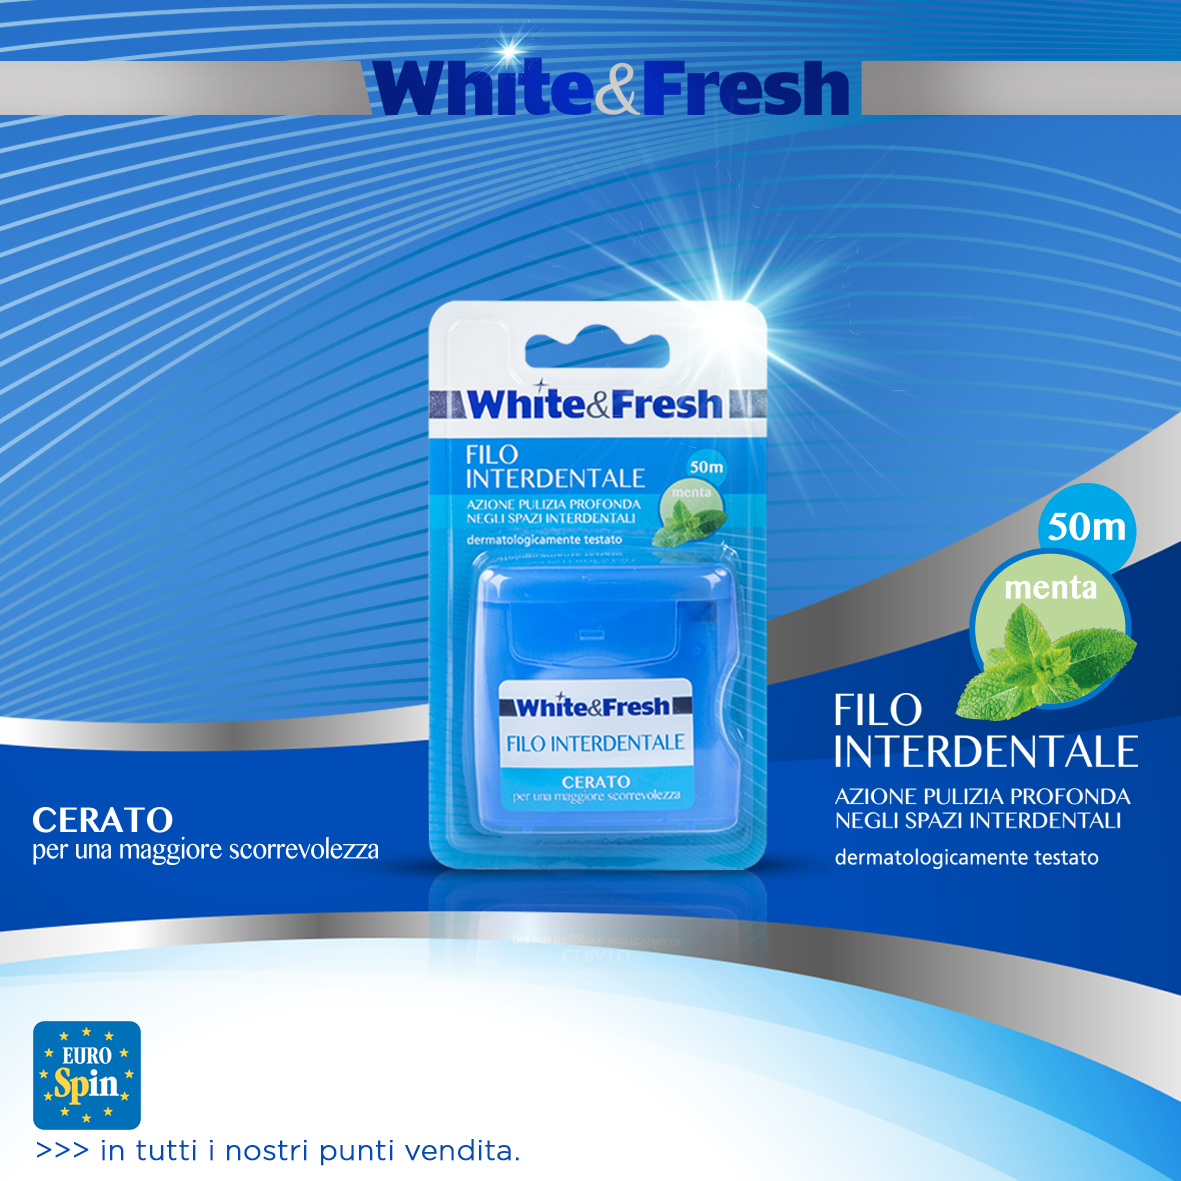 FILO INTERDENTALE WHITE & FRESH